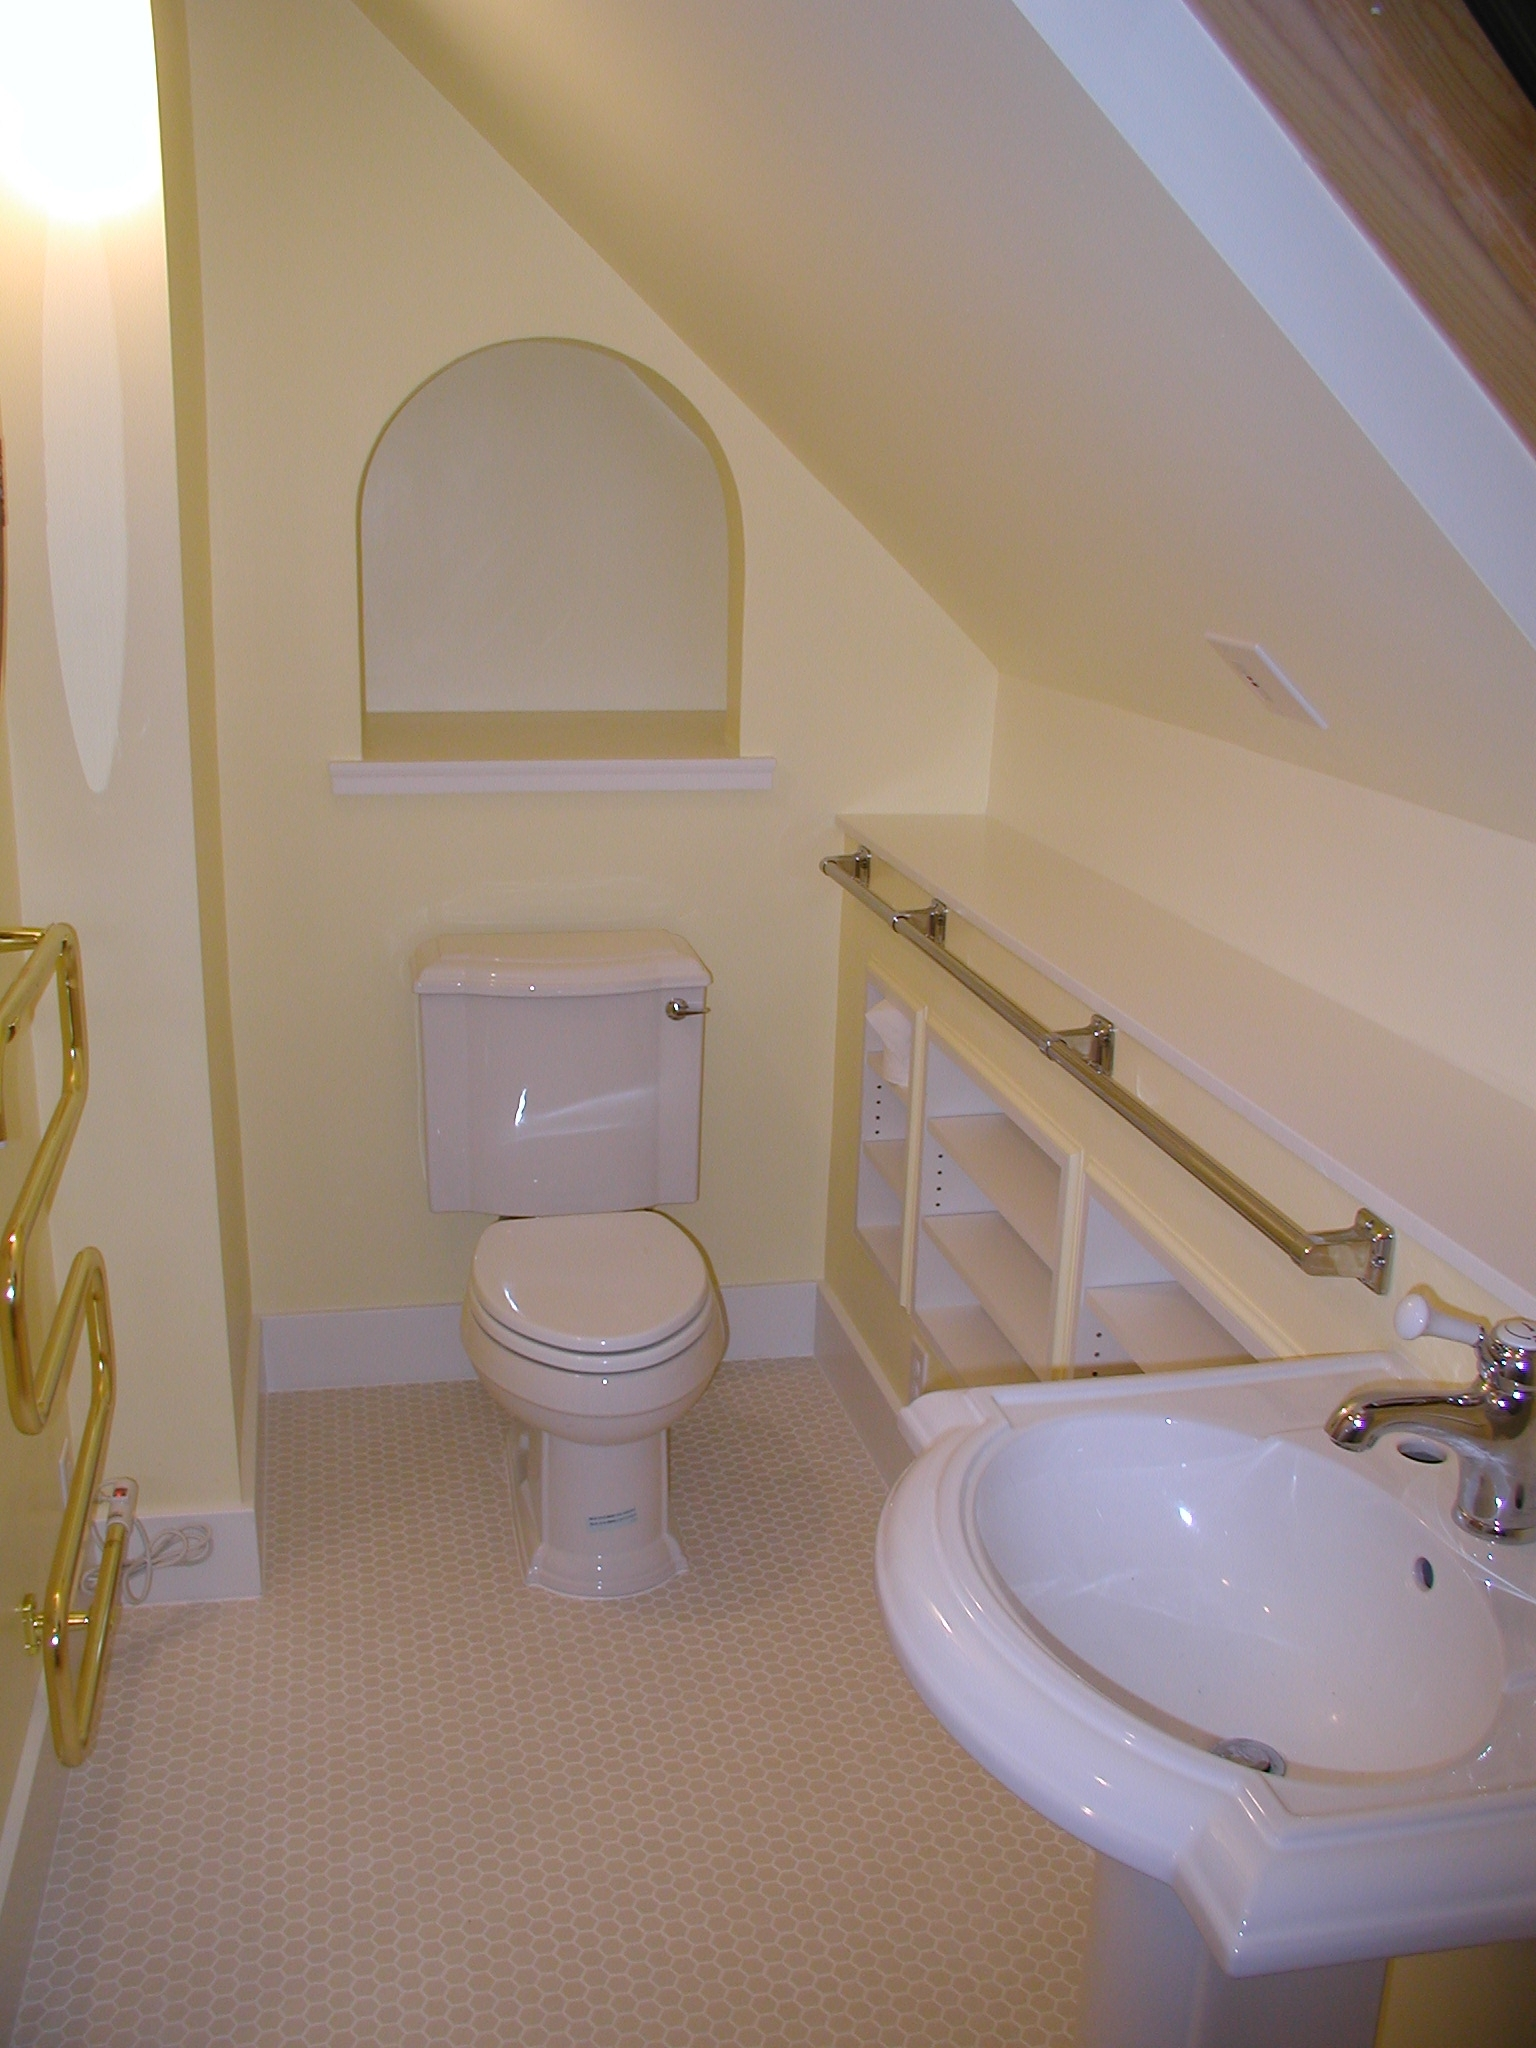 How To Deal With Awkward Bathroom Layouts | Rose 20+ Small Bathroom With Sloped Ceiling Ideas